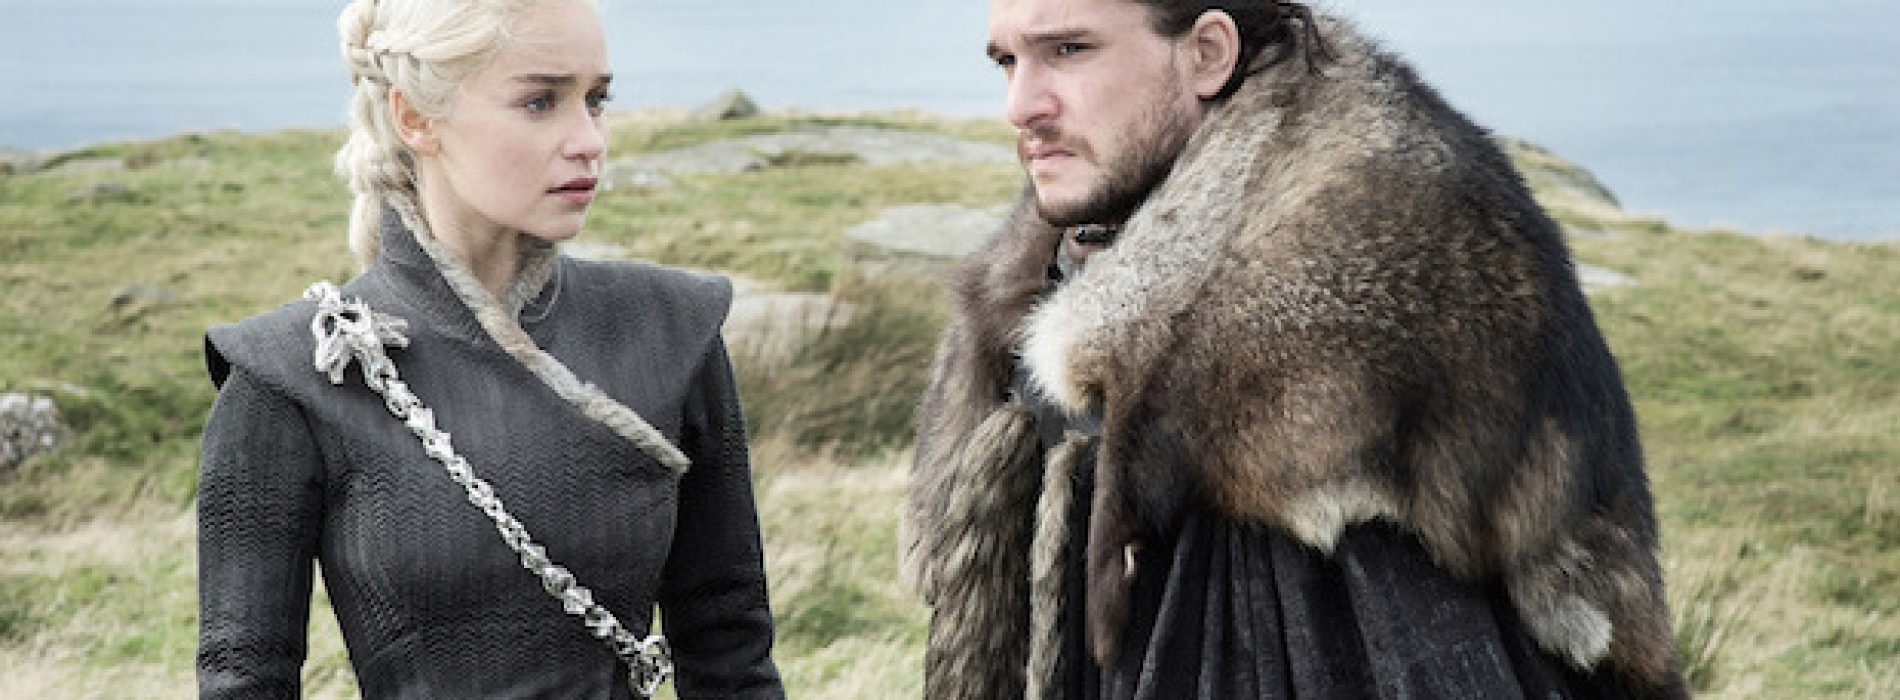 You can Visit all of the Game of Thrones Film Locations in Ireland